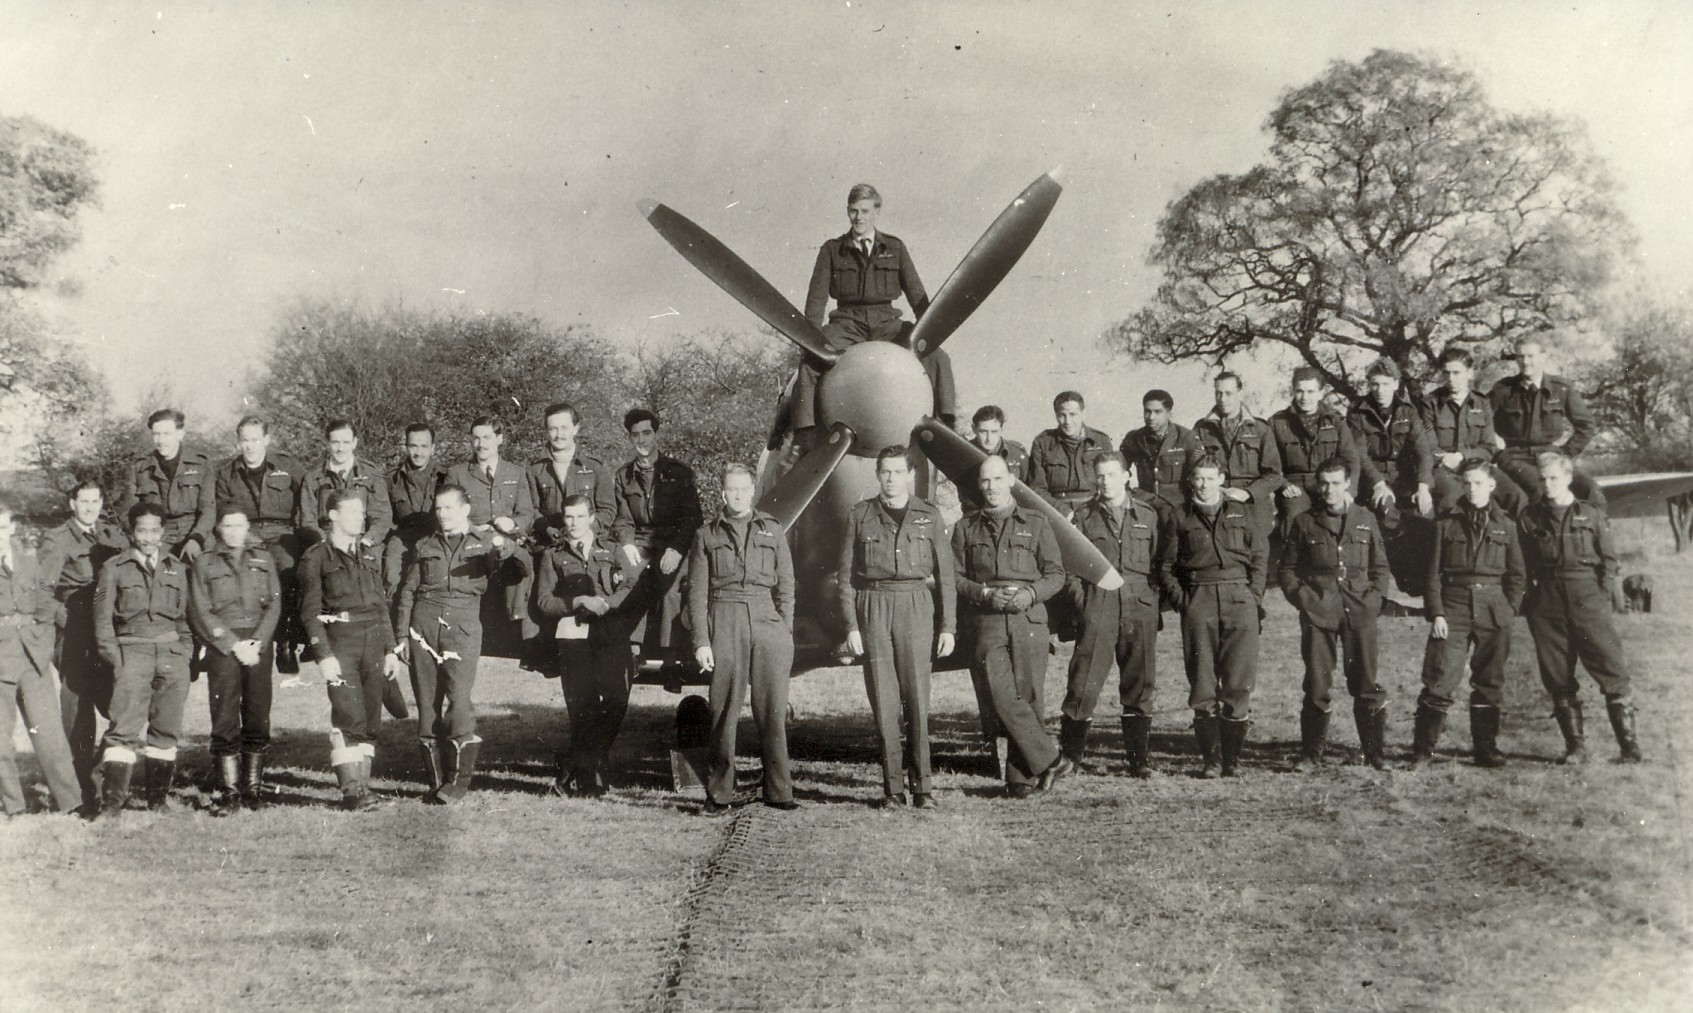 14, 132 Sqdn,RAF Detling, JJ Caulton front row, 5th from right